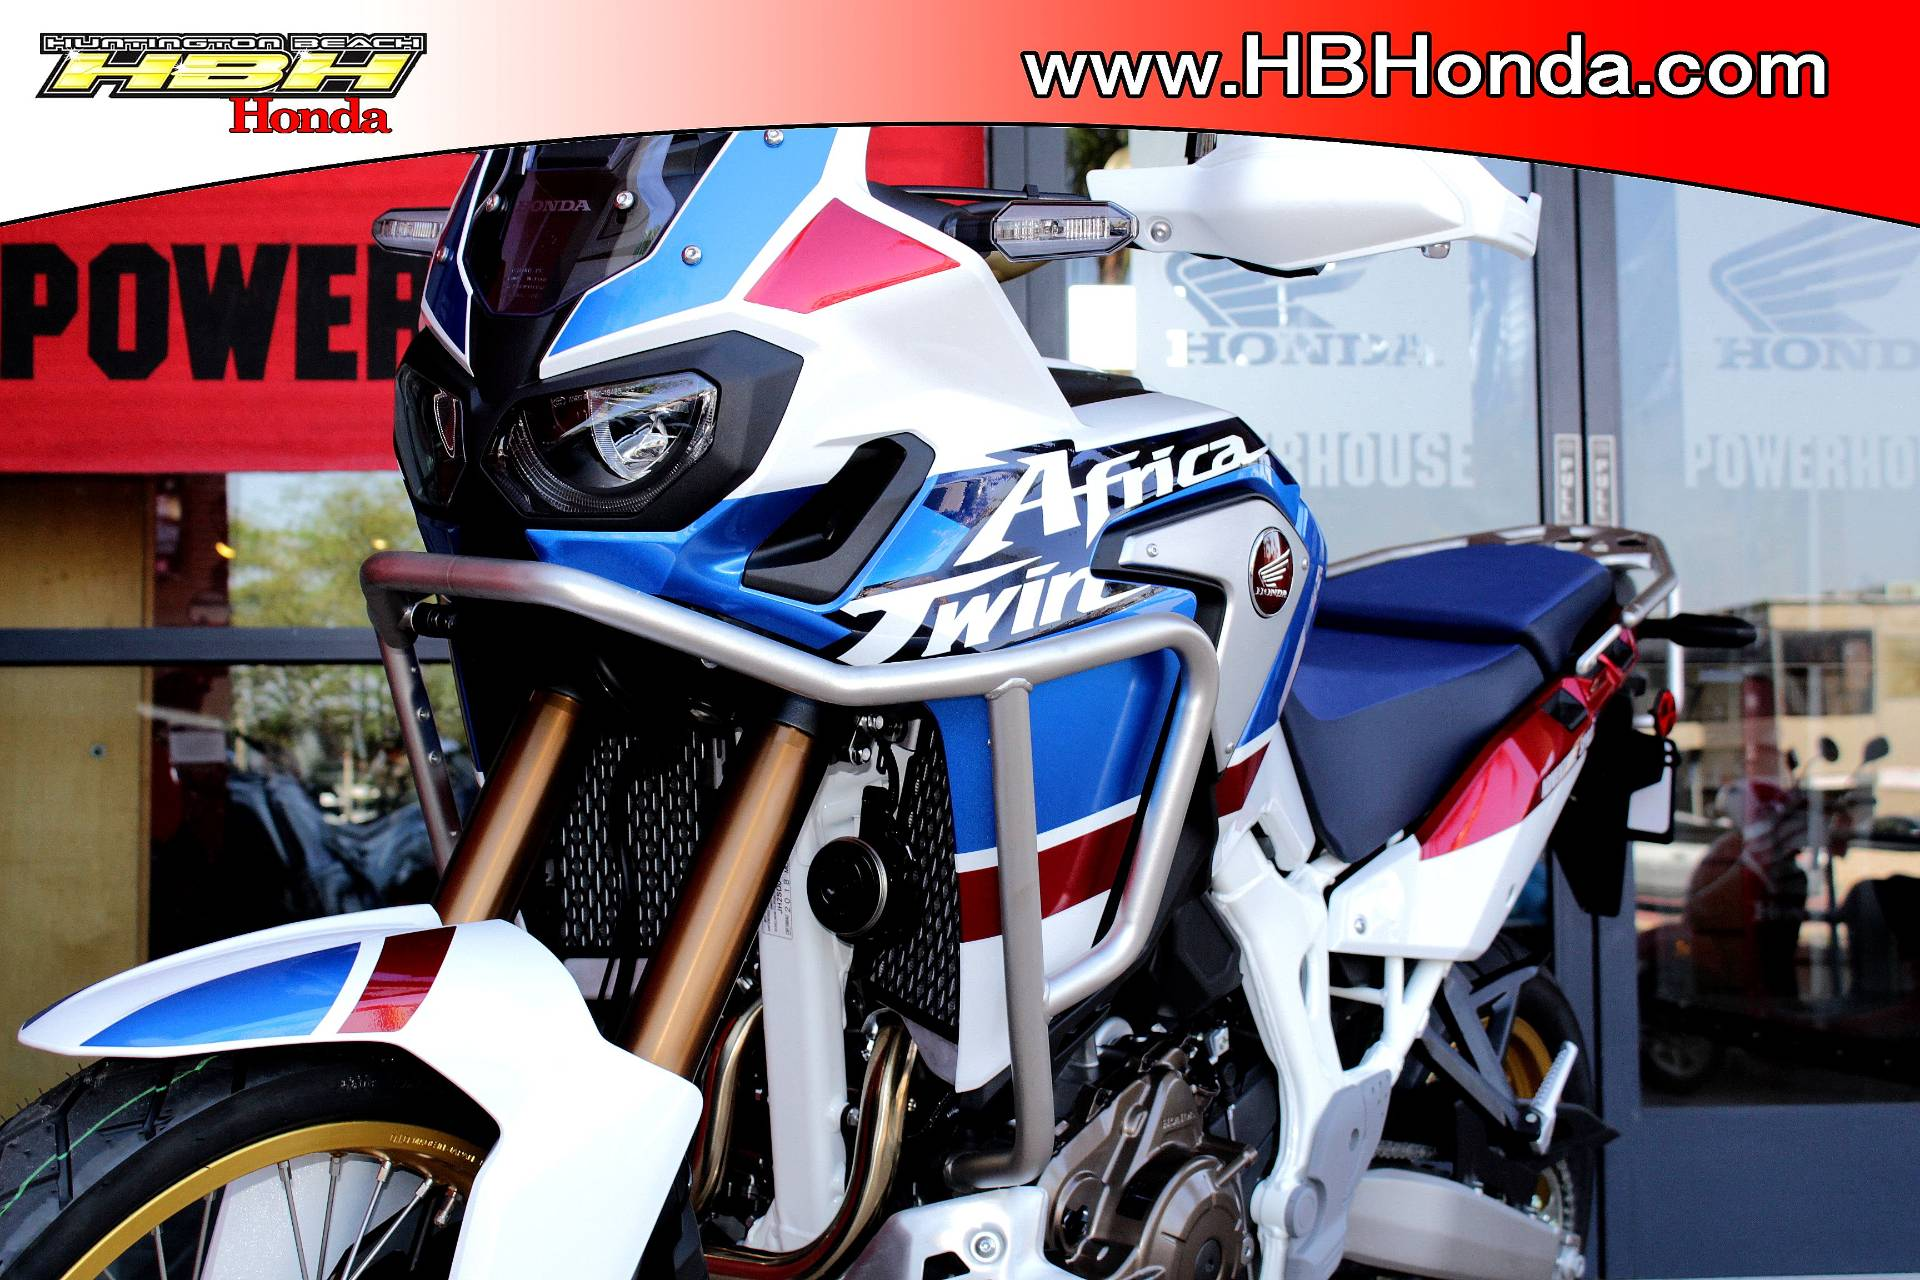 New 2018 Honda Africa Twin Adventure Sports Motorcycles For Sale In Designs Huntington Beach California